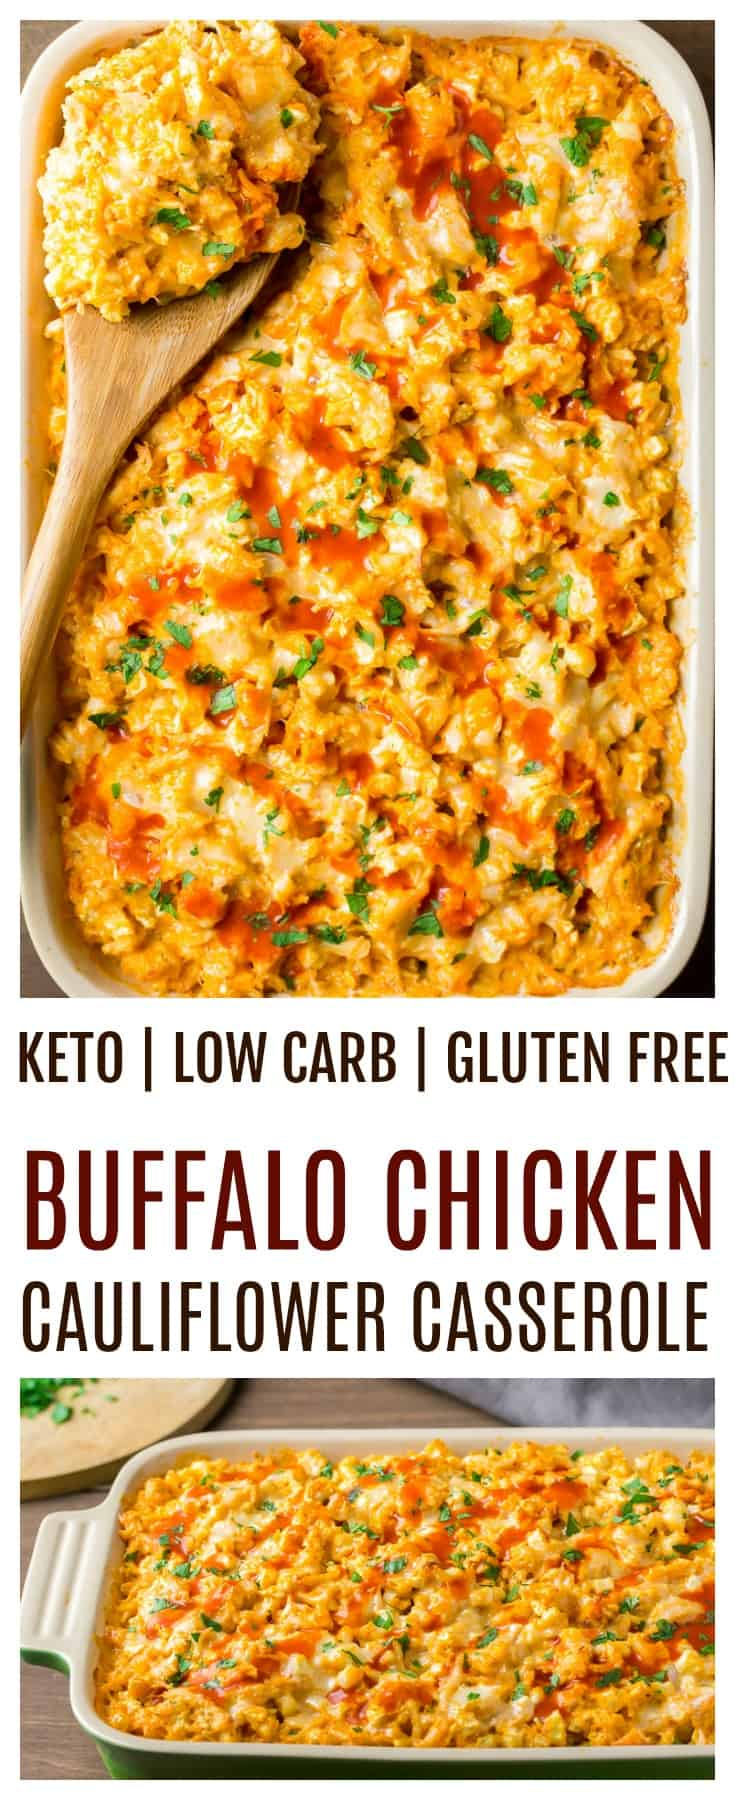 Creamy Buffalo Chicken Cauliflower Casserole - an easy recipe great for those on keto, low carb and/or gluten free diets. This casserole bake is loaded with spicy buffalo chicken sauce, chinks of chicken, and cauliflower rice. All mixed with a delicious blend of cheeses. | #dlbrecipes #lowcarbrecipes #ketorecipes #buffalochicken #glutenfreerecipes